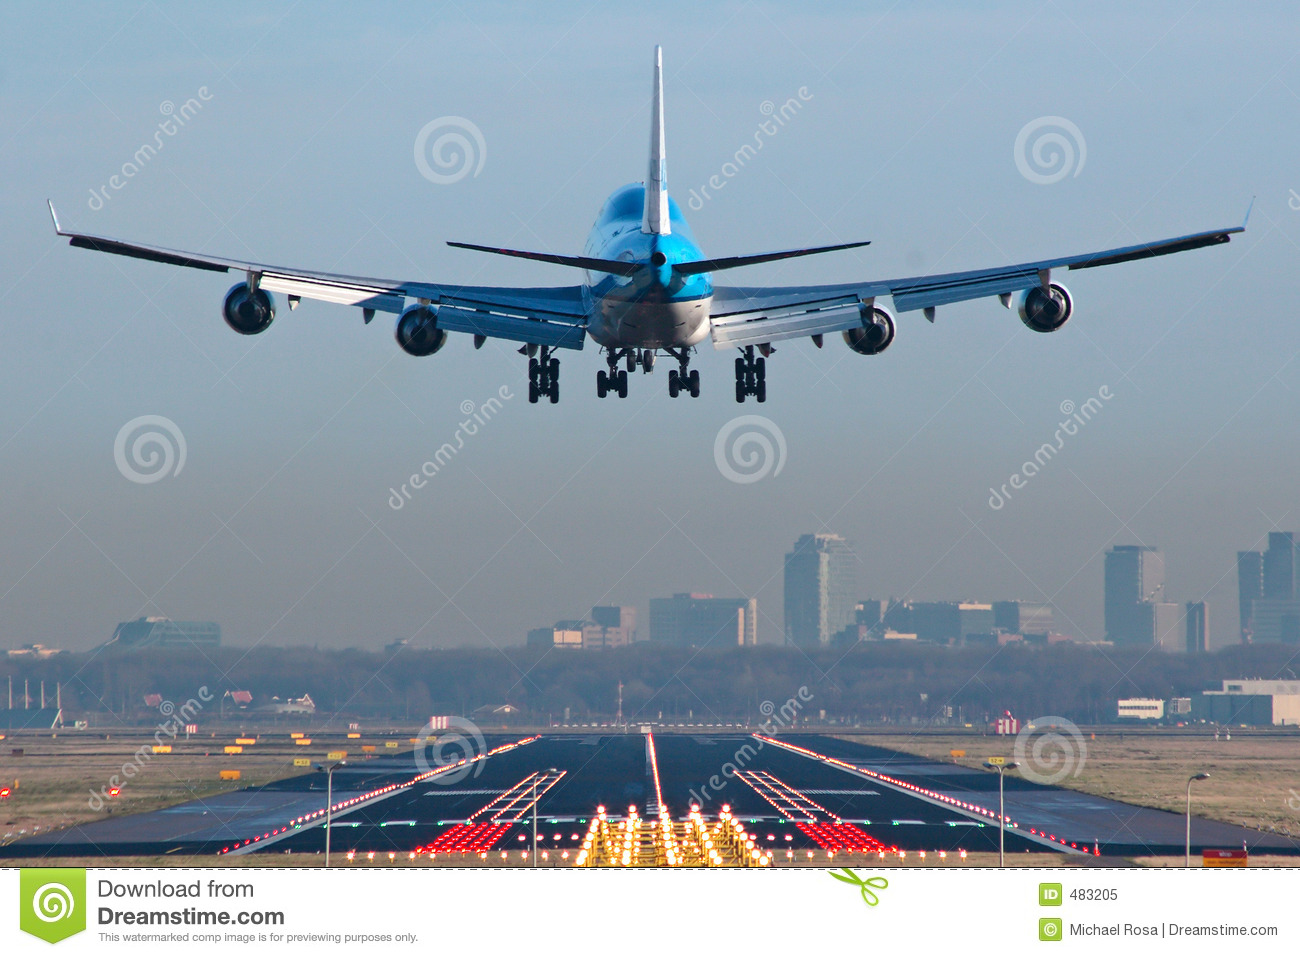 Boeing 747 airplane about to touchdown